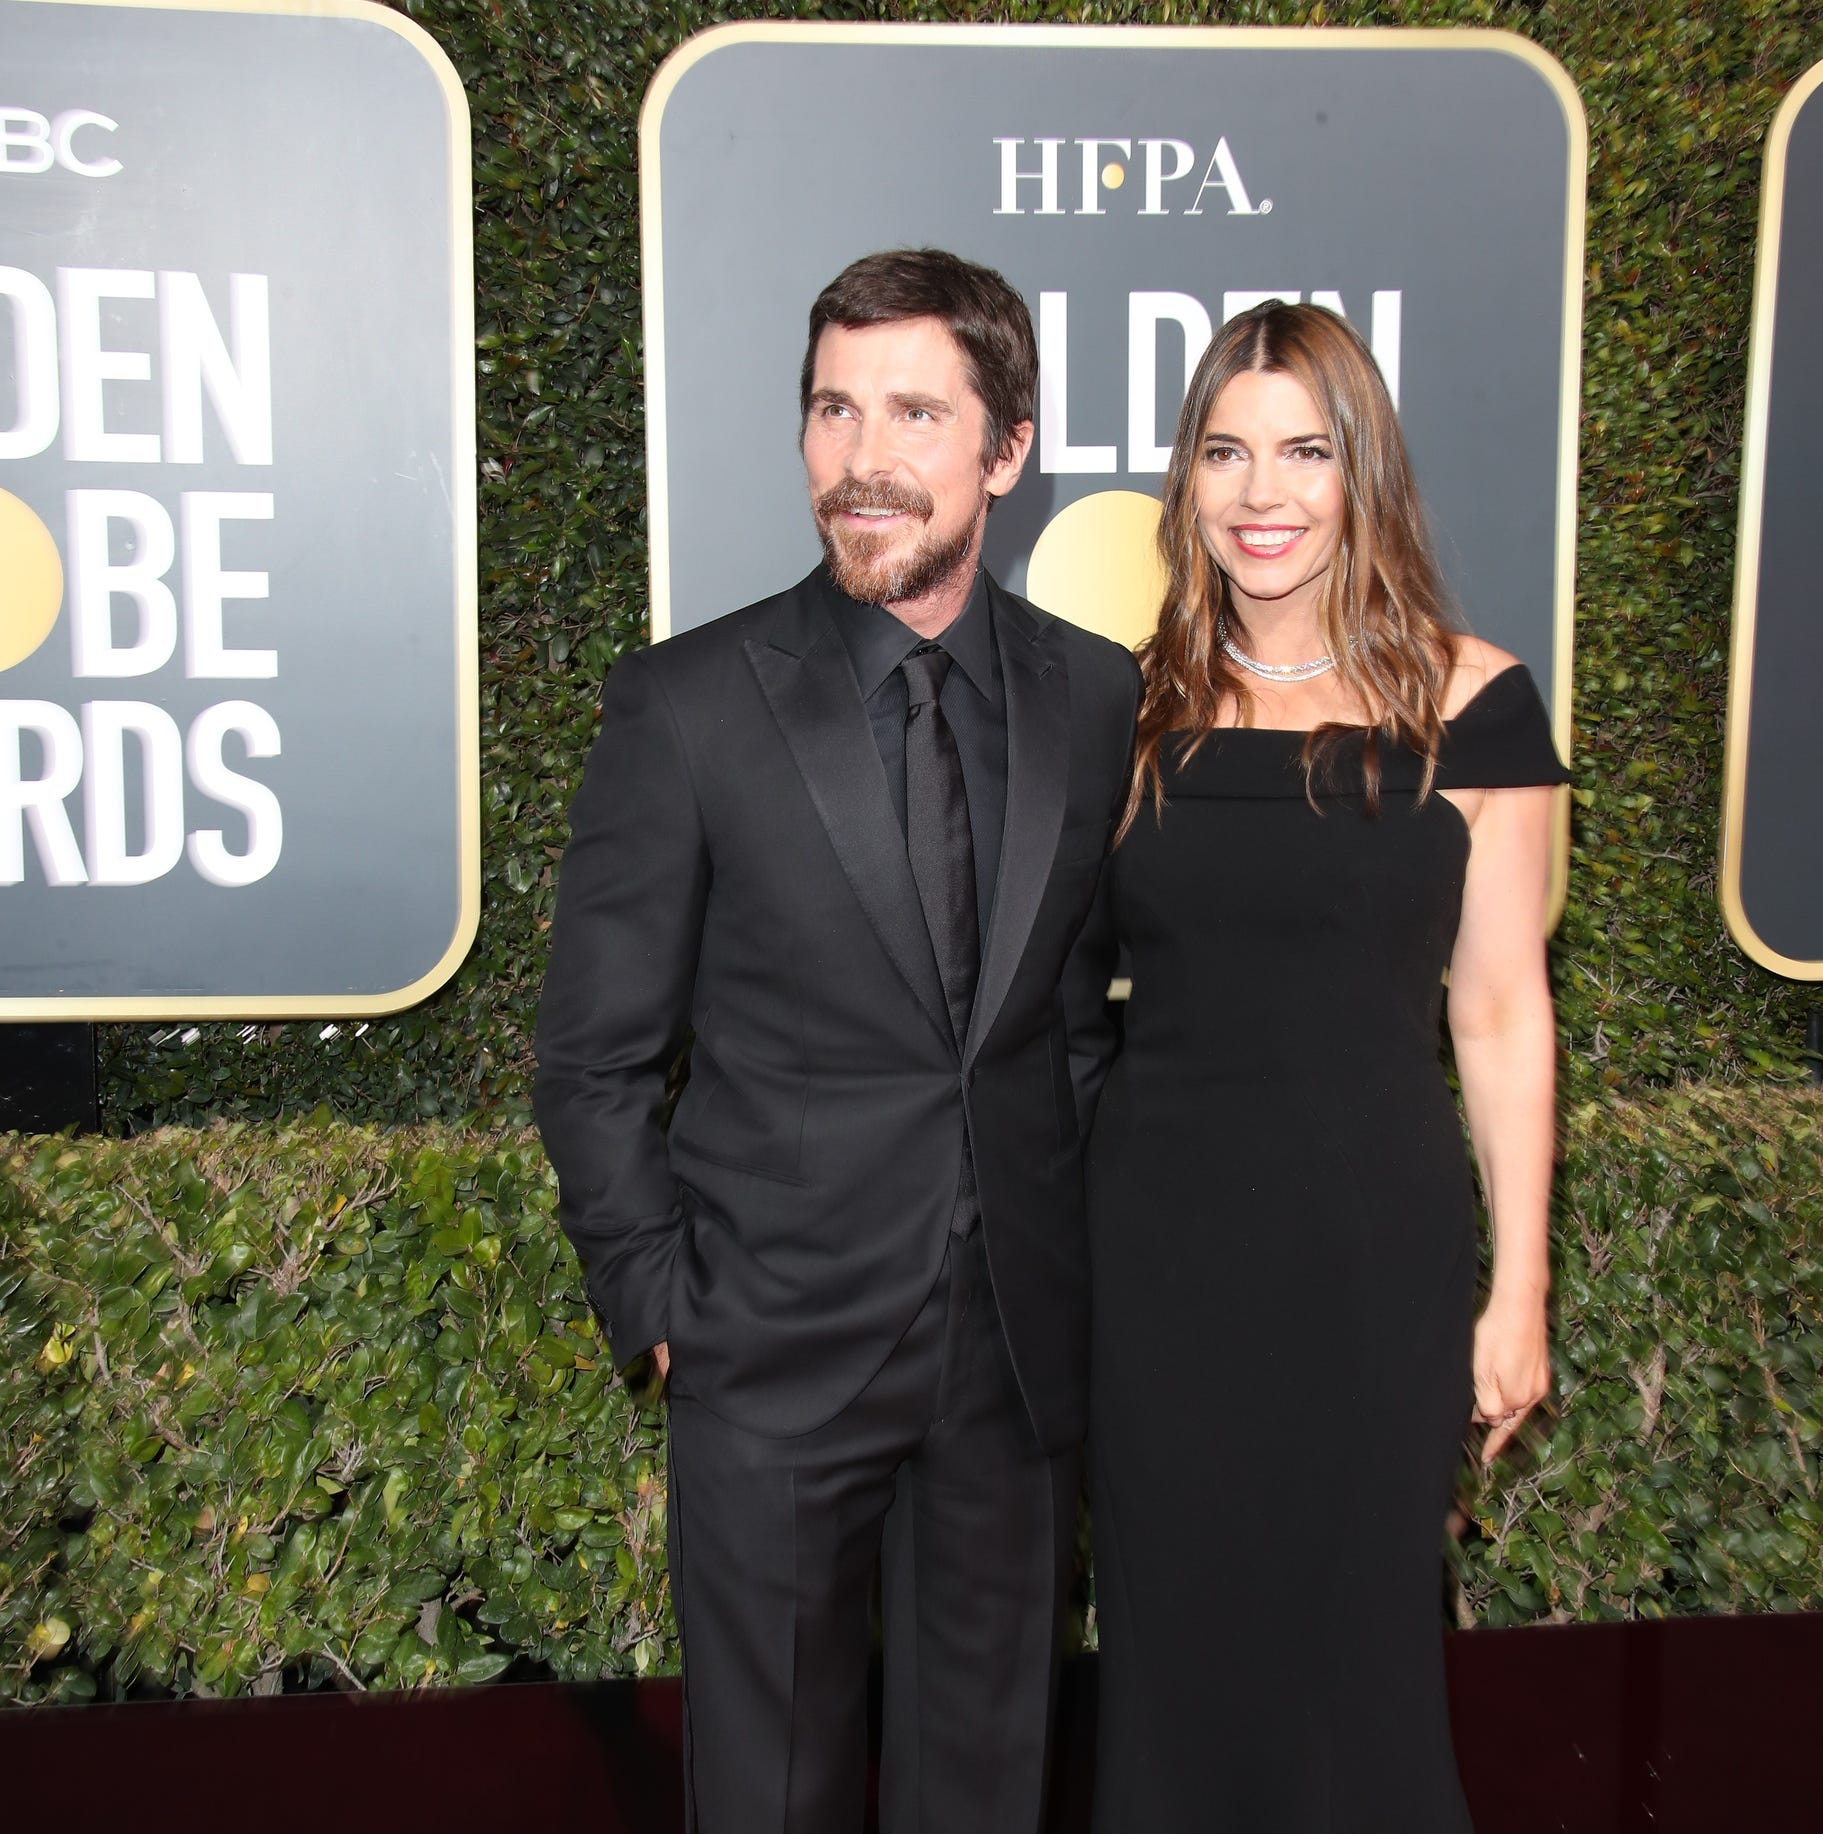 Christian Bale uses Golden Globes speech to call McConnell a naughty word